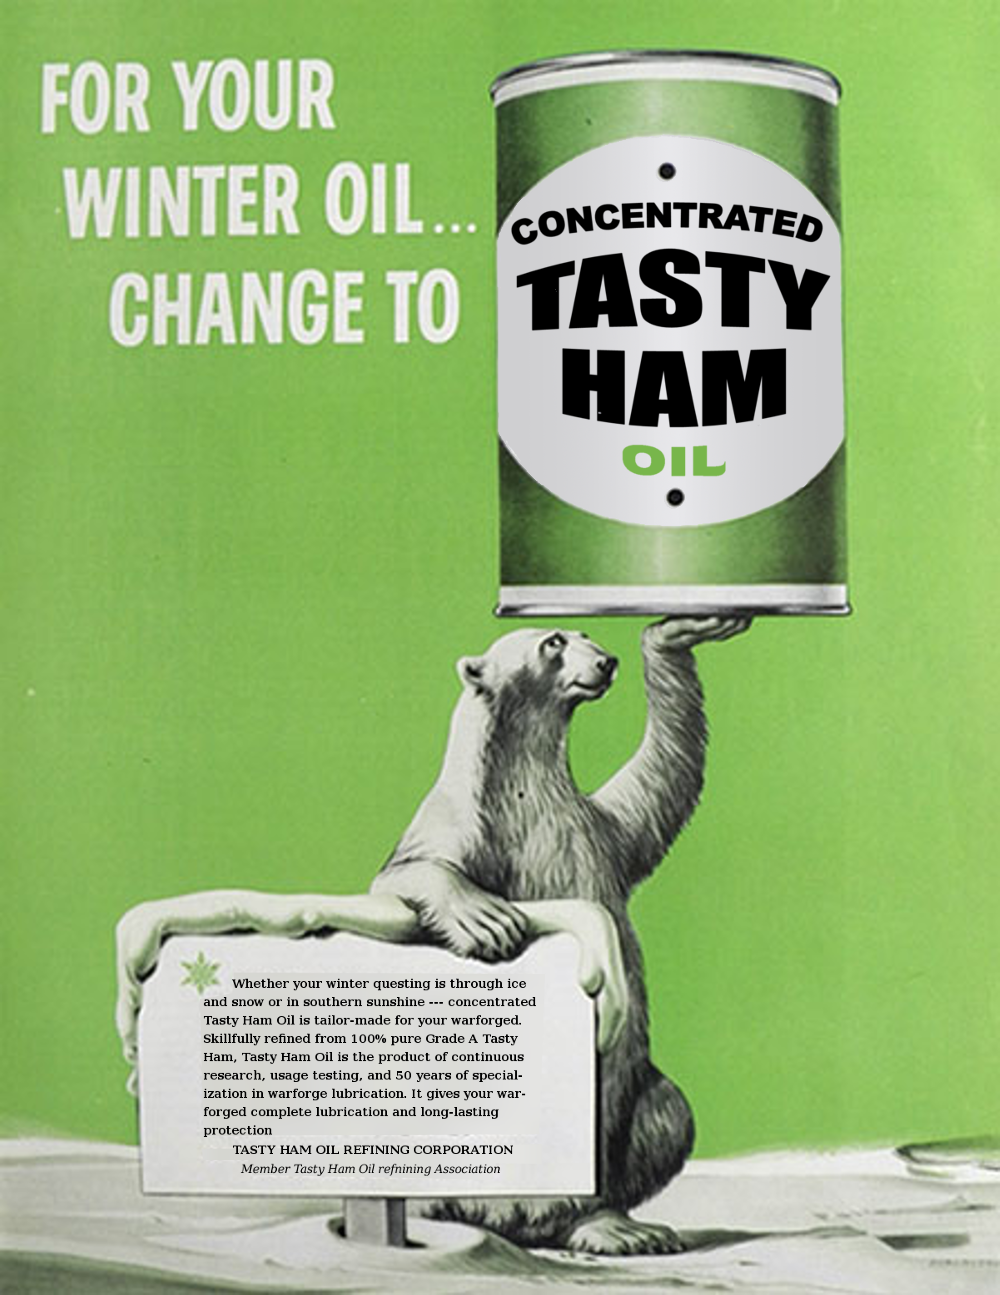 Concentrated Tasty Ham Oil